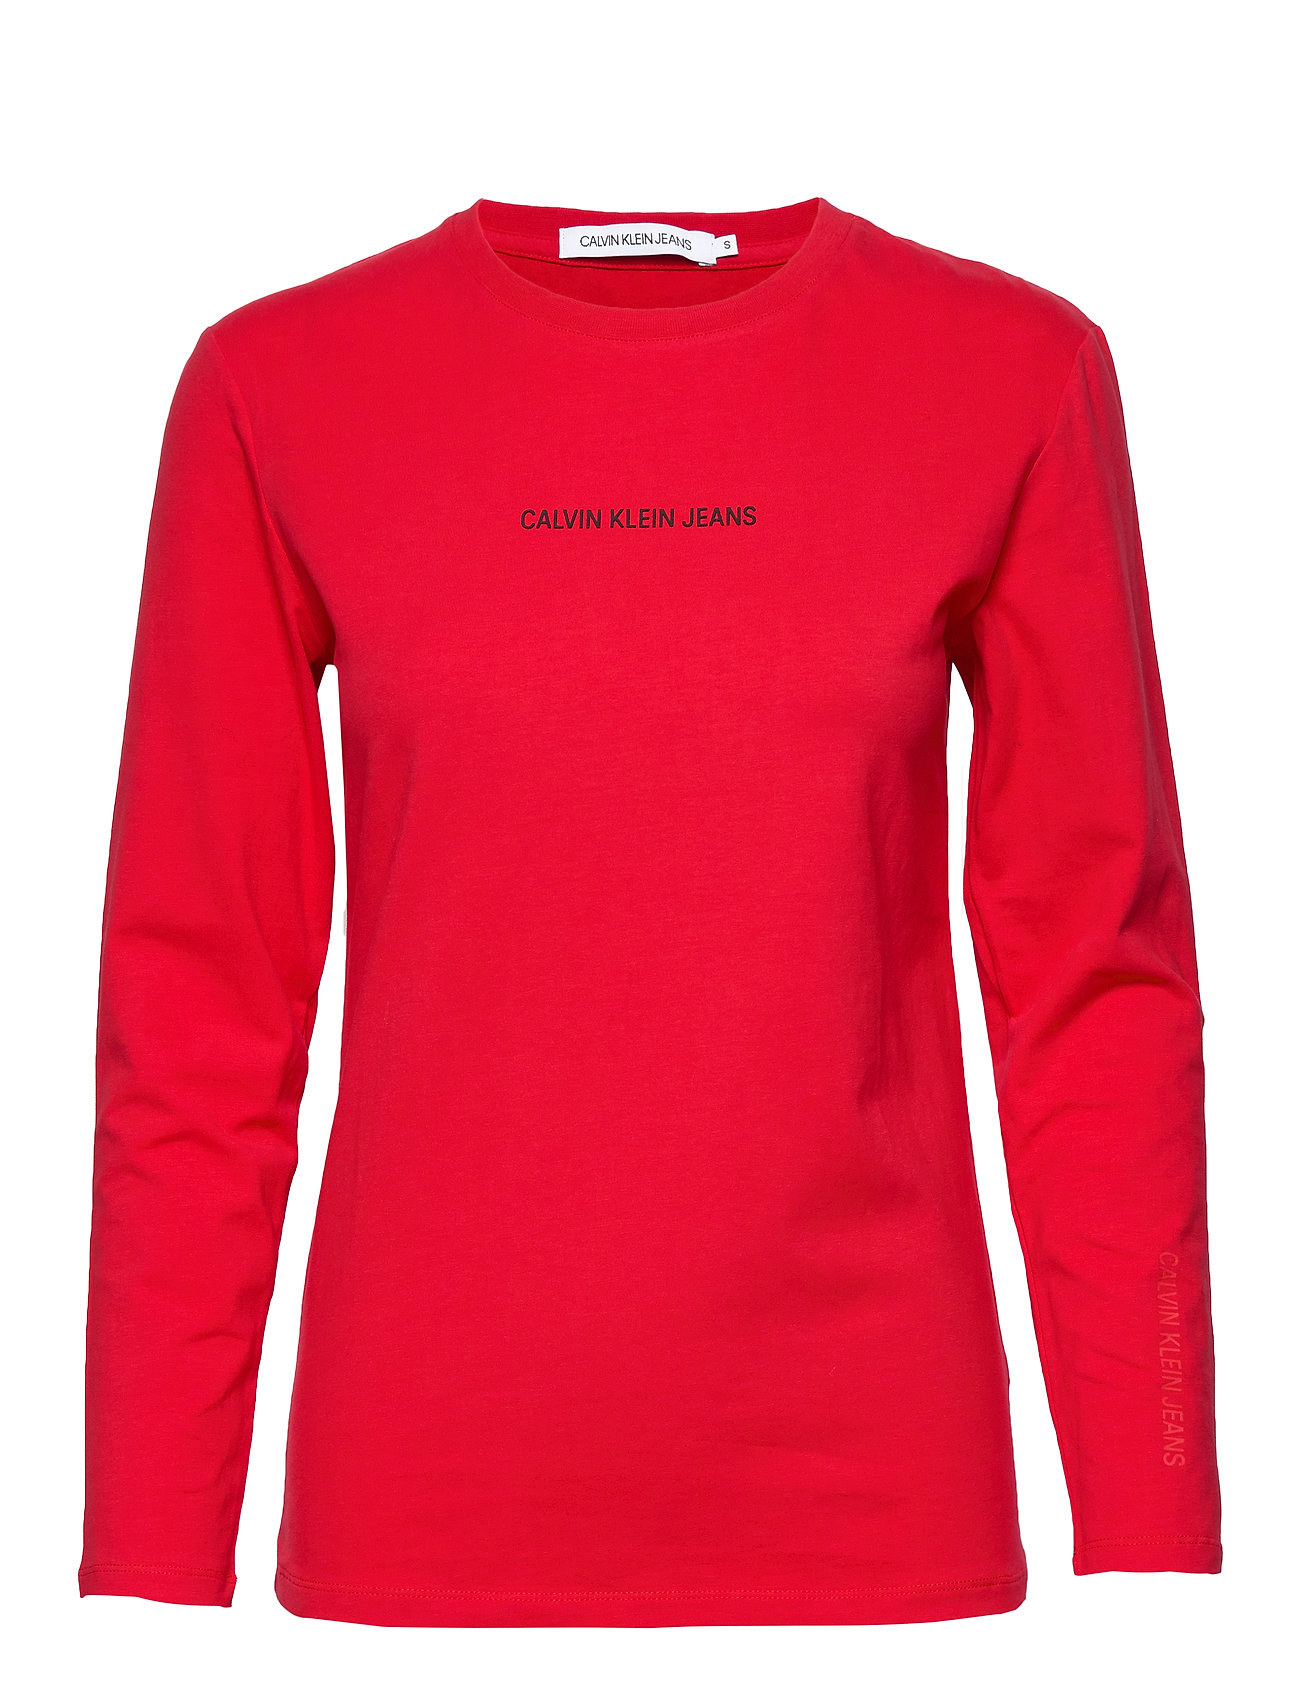 Calvin Klein Jeans INST LOGO STRETCH LS SLIM TEE - RACING RED